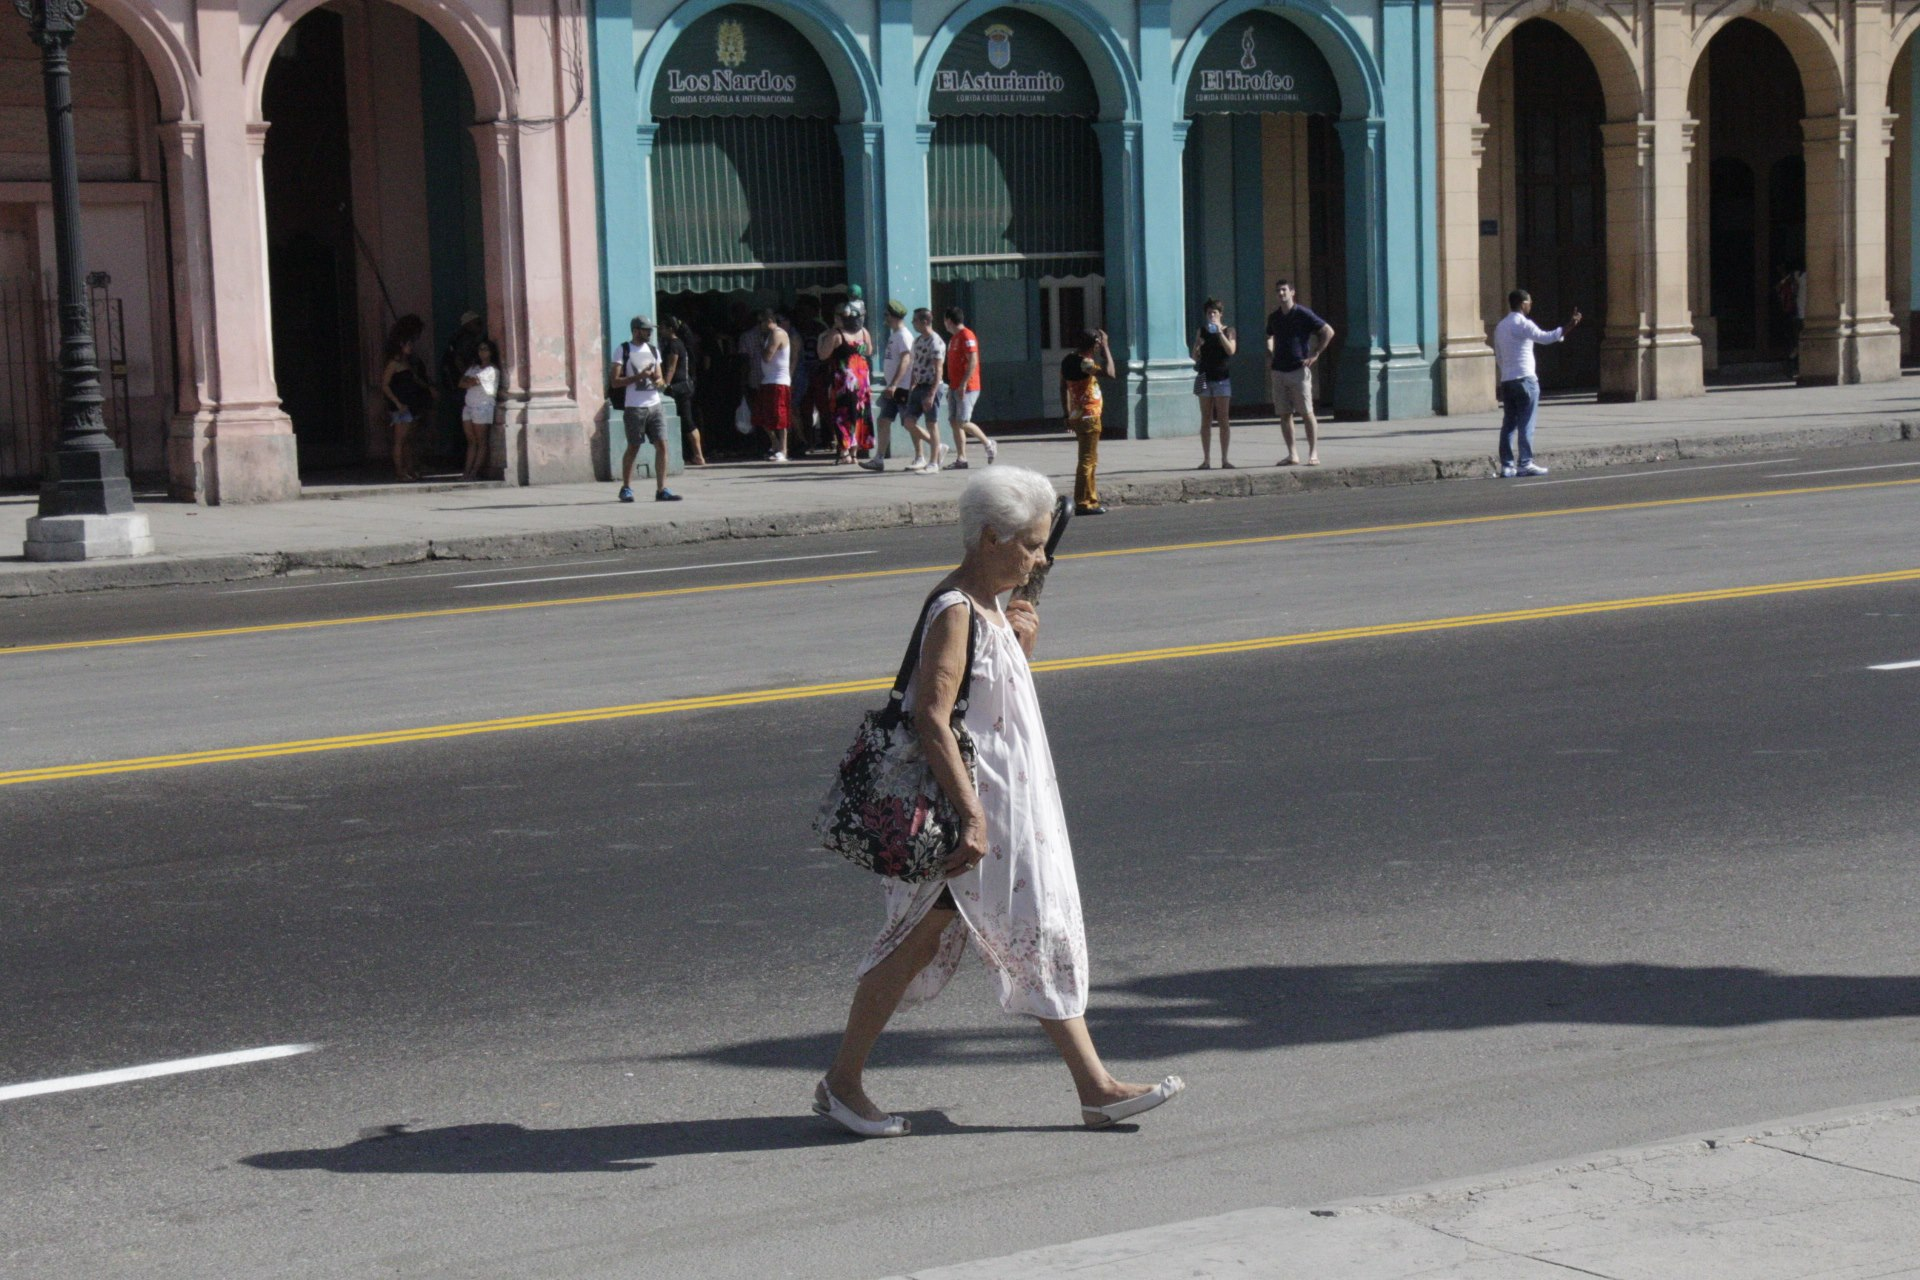 The stark imagery of Cuba is contrasted by the muted clothing of locals. With so many in poverty, the bare essentials were more norm, even in more elegant neighborhoods.